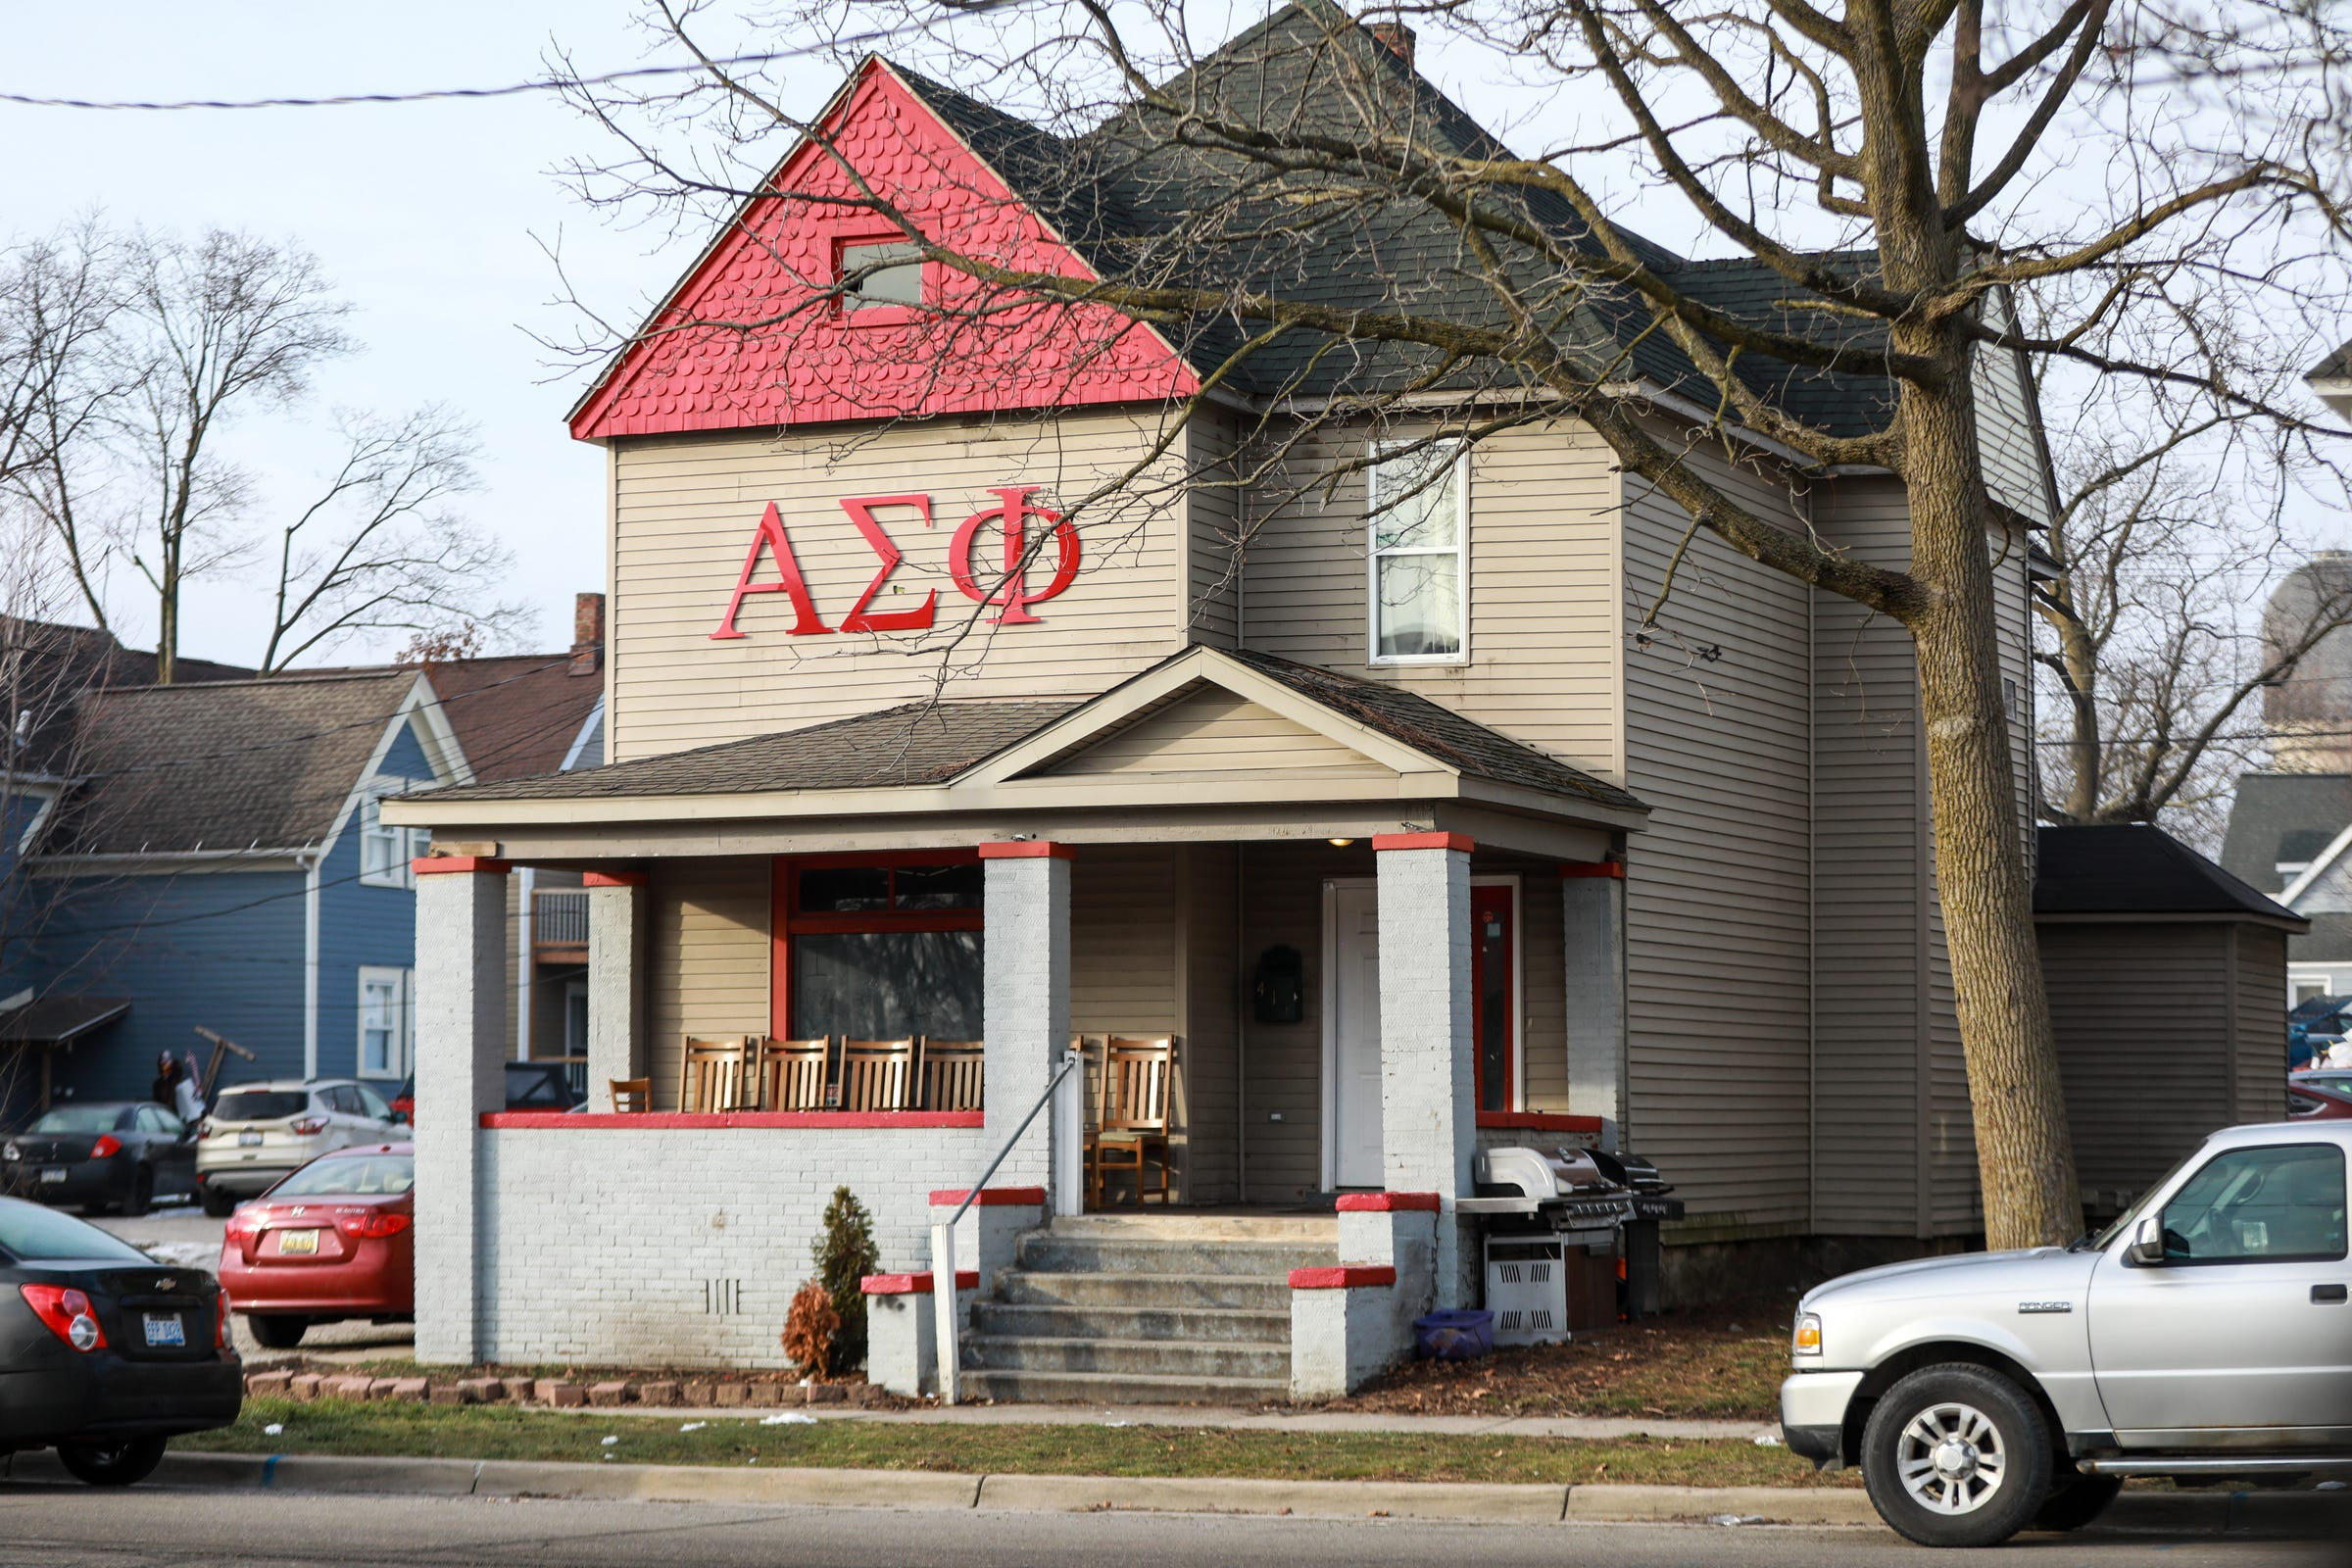 Alpha Sigma Phi fraternity house at 411 Ballard st. on the Eastern Michigan University campus in Ypsilanti on Wednesday, Jan.13, 2021.